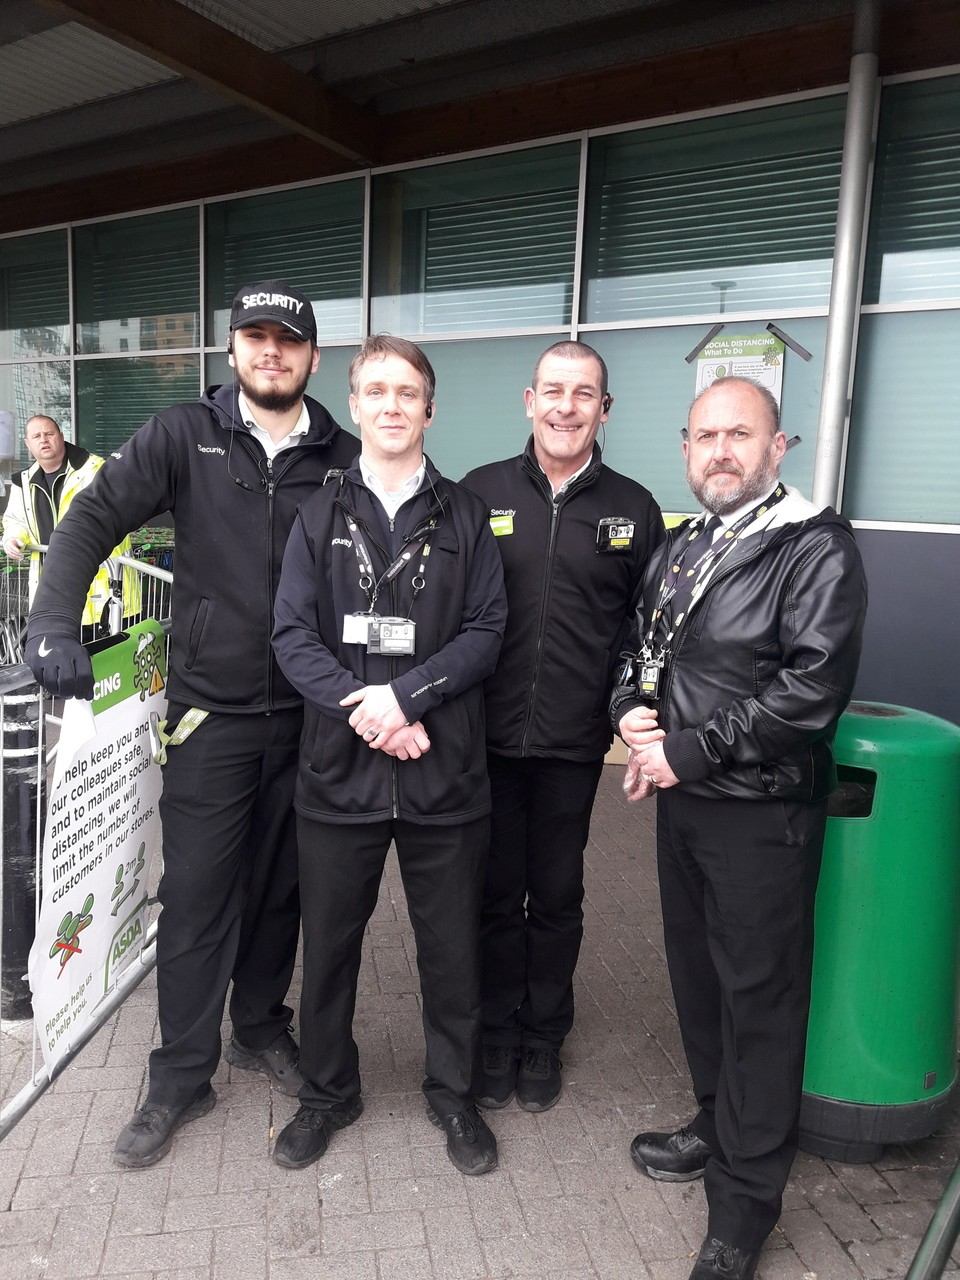 Thanking our security guys | Asda Bootle